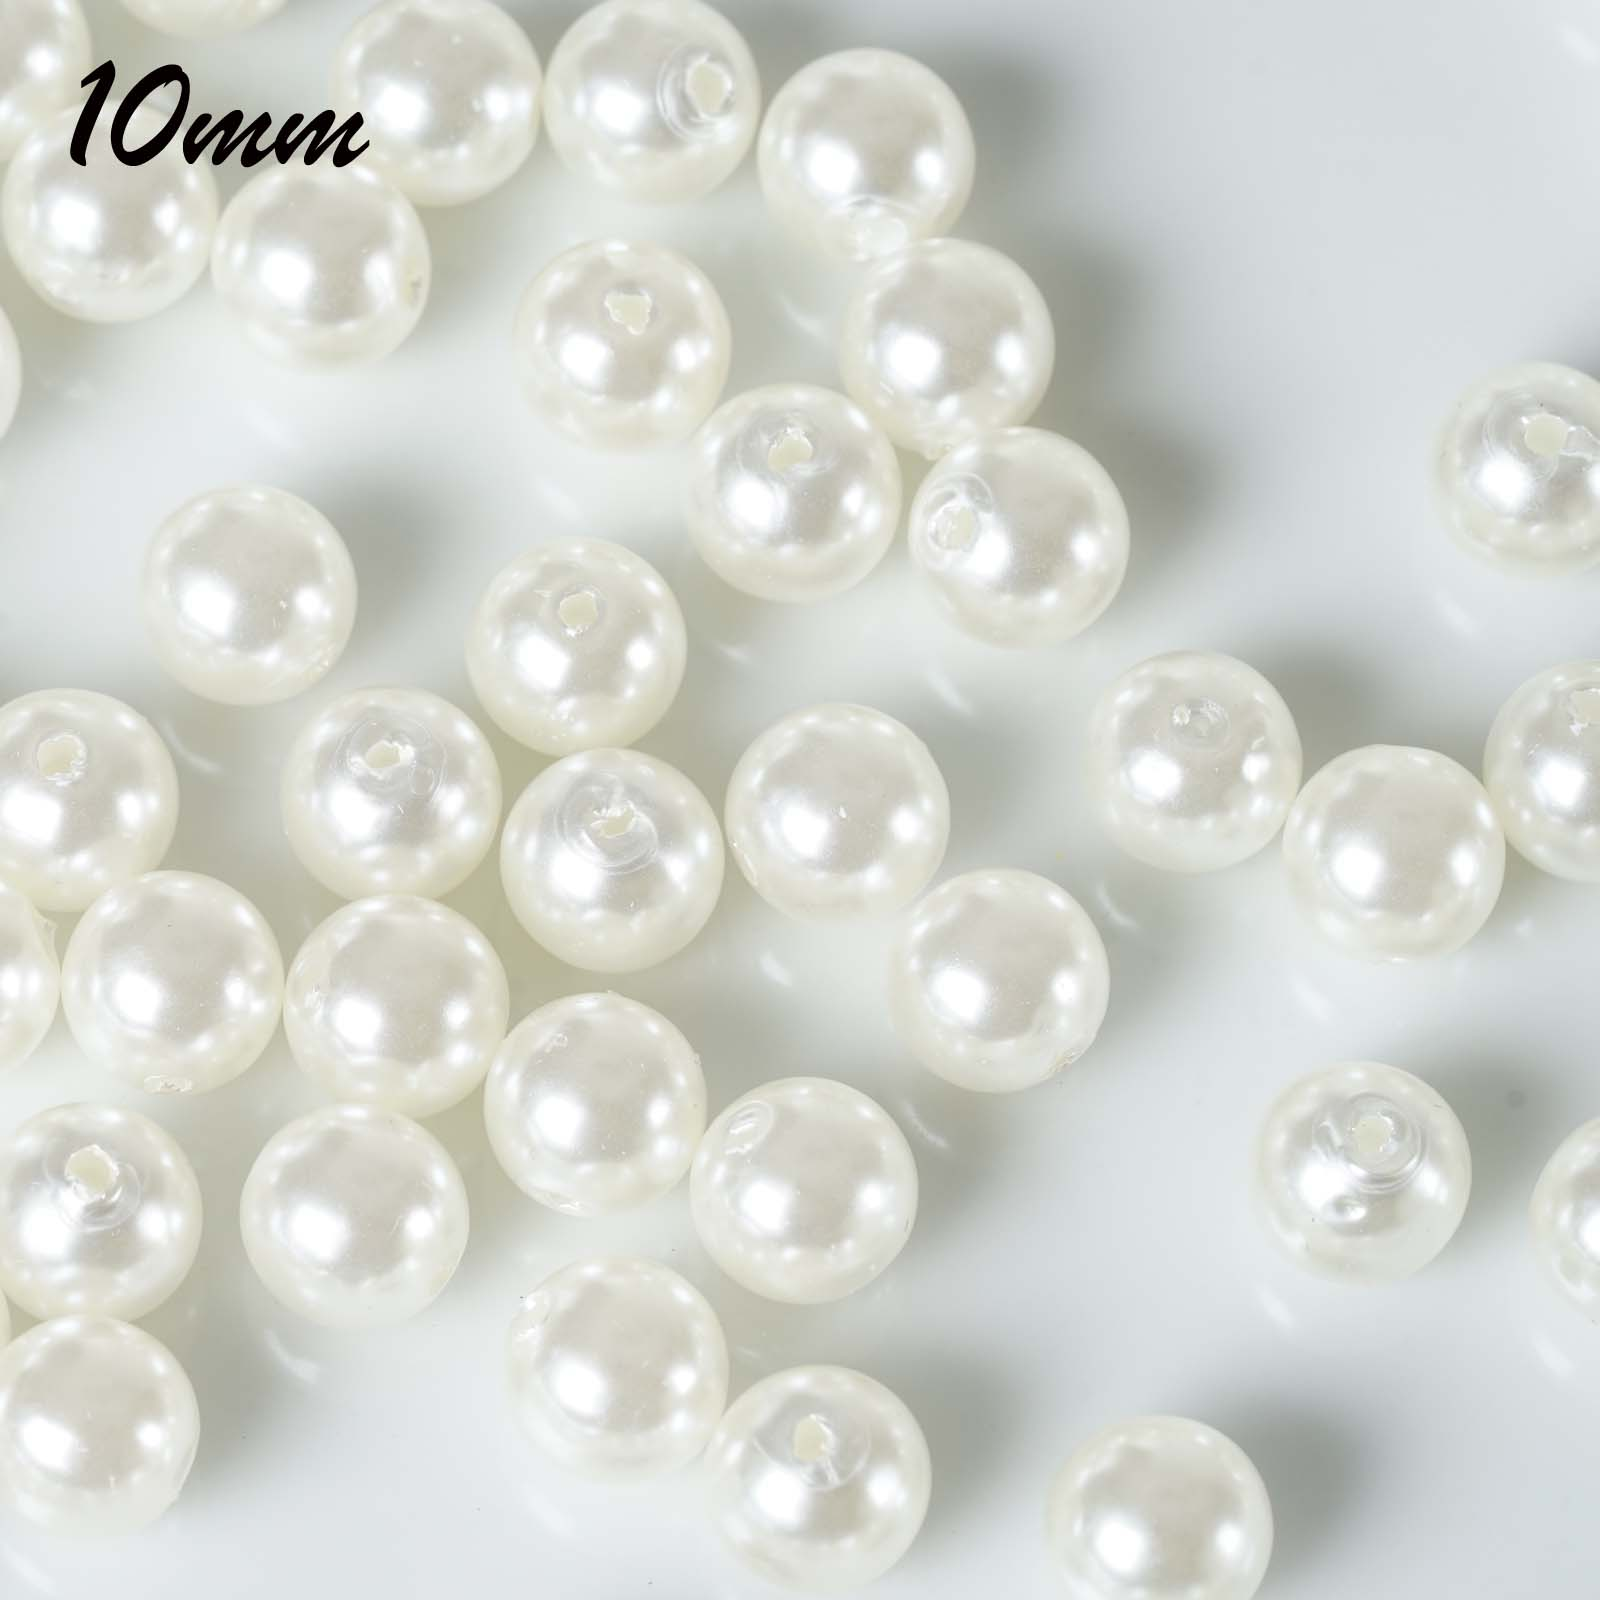 """BalsaCircle 10 mm or 0.39"""" wide Faux Pearls Loose Beads - Wedding Party Home Crafts DIY Favors Centerpieces Fillers Decorations"""